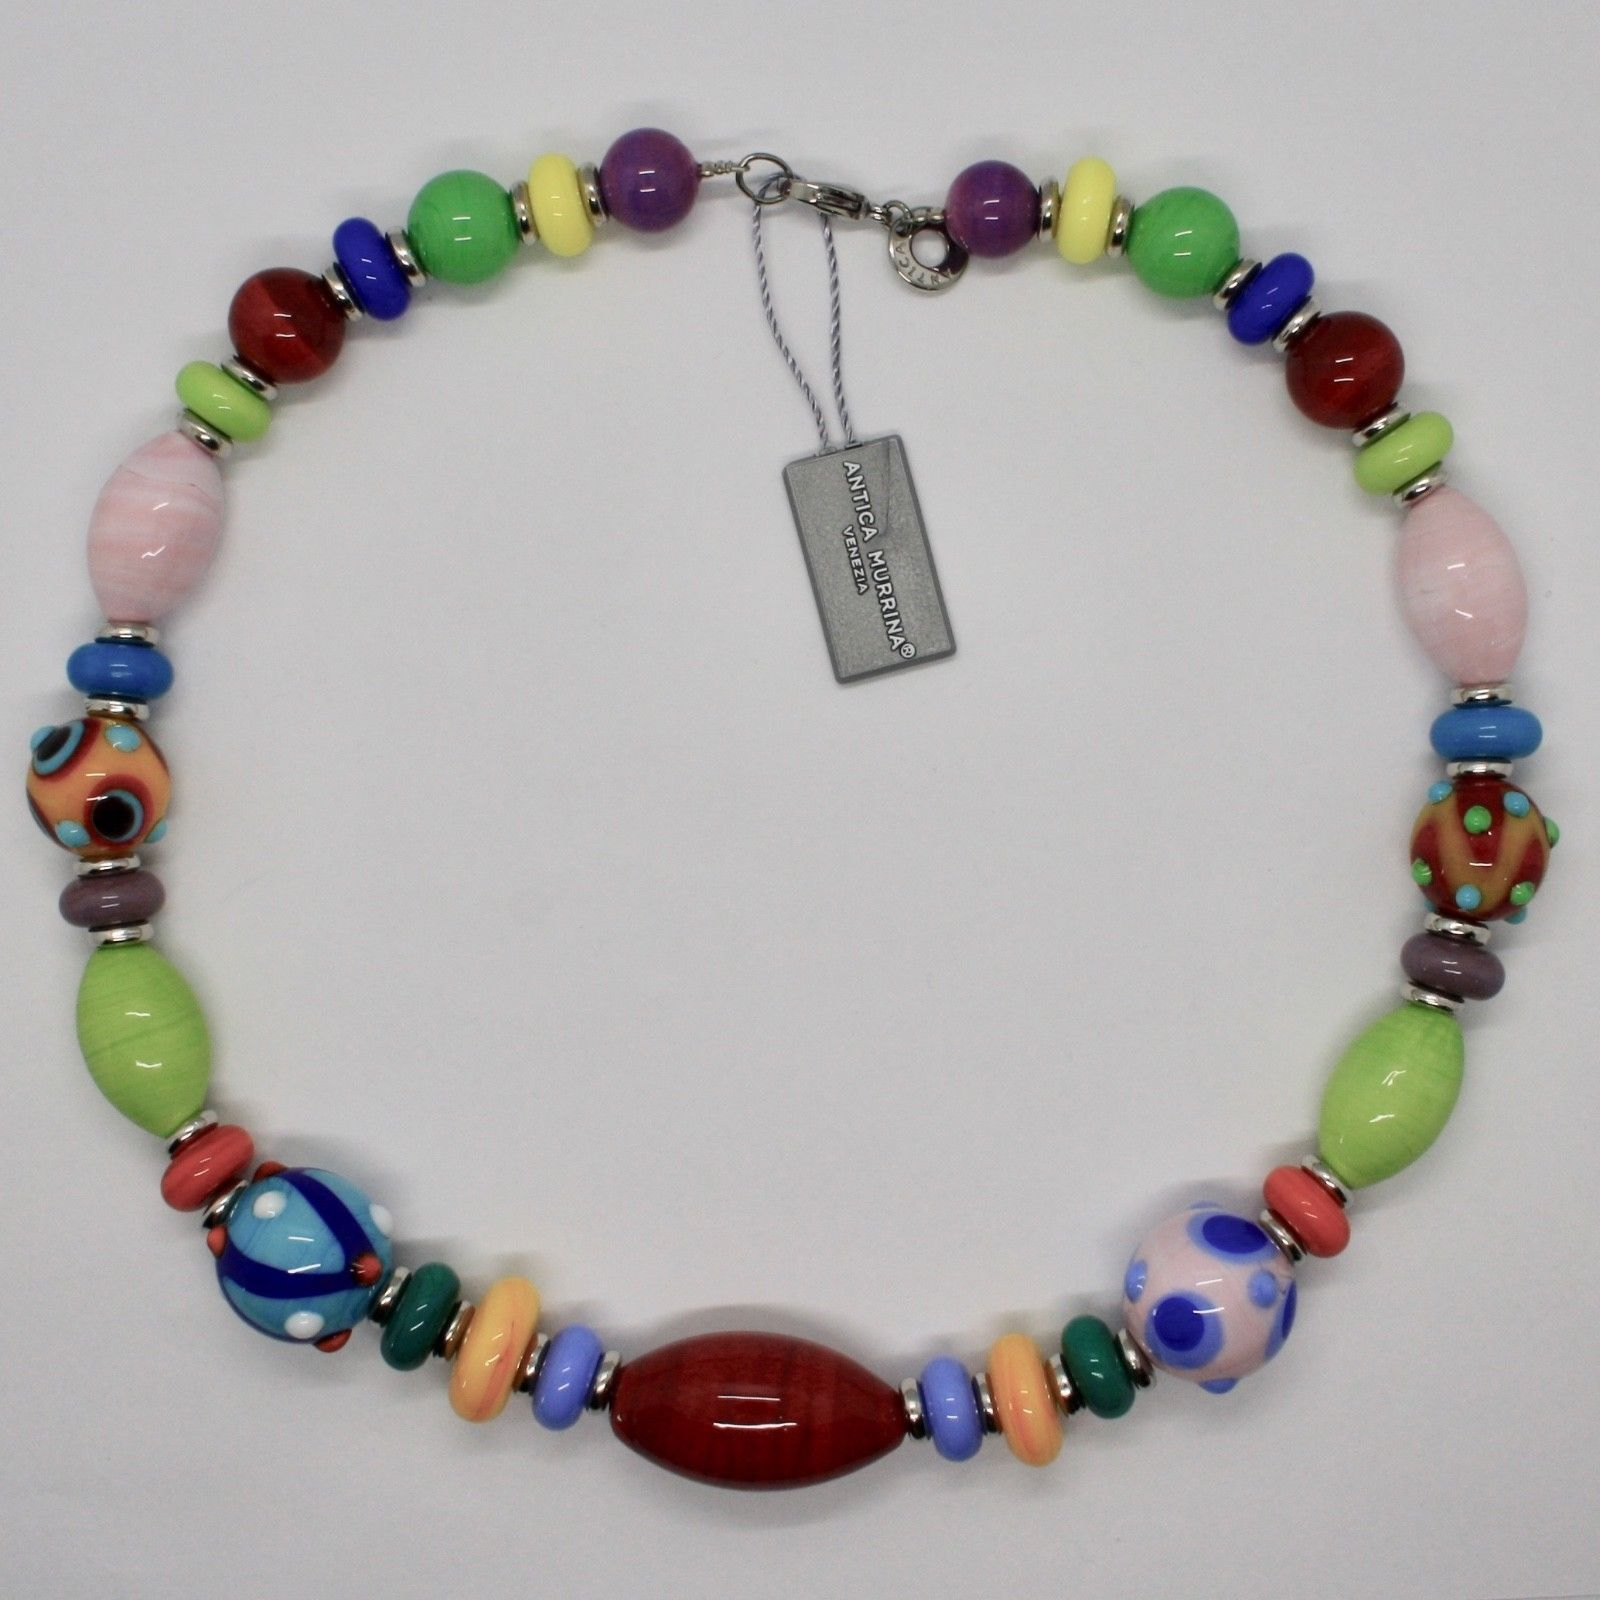 ANTICA MURRINA VENEZIA NECKLACE WITH MURANO GLASS MULTICOLOR CO204A00